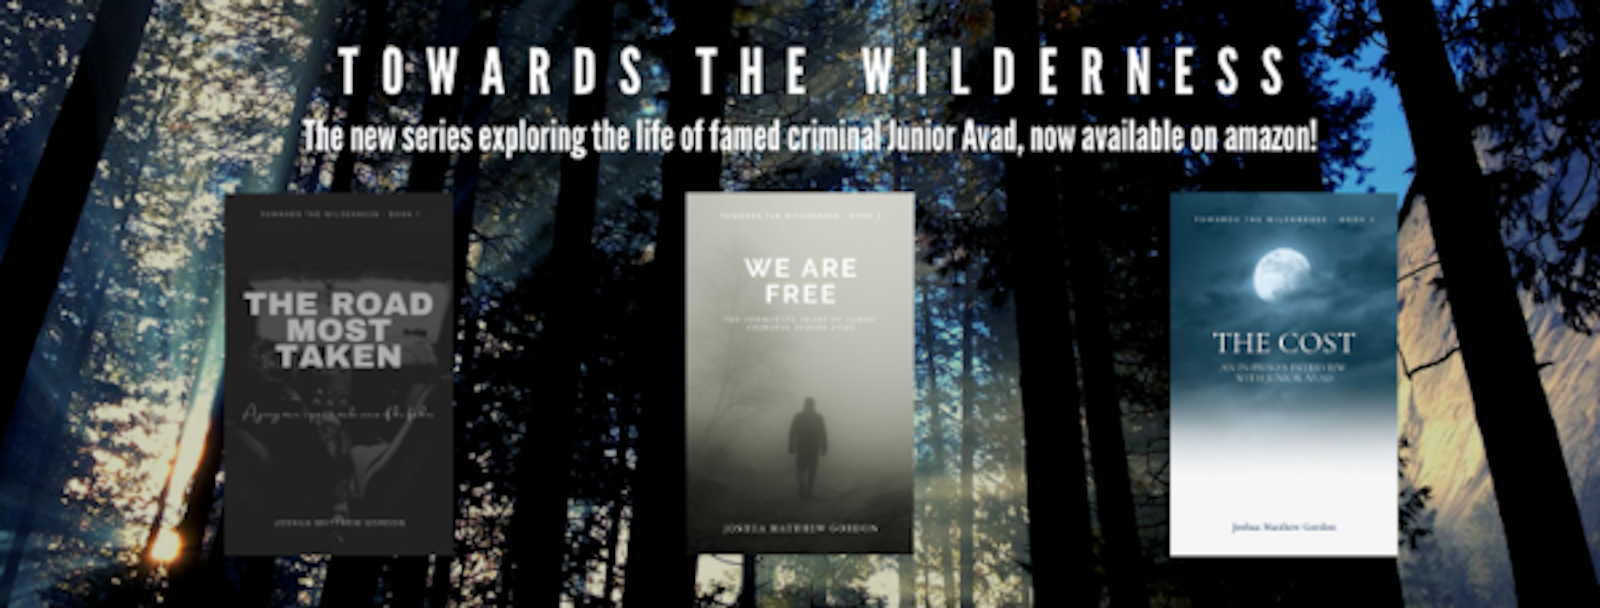 towards the wilderness fb cover website size